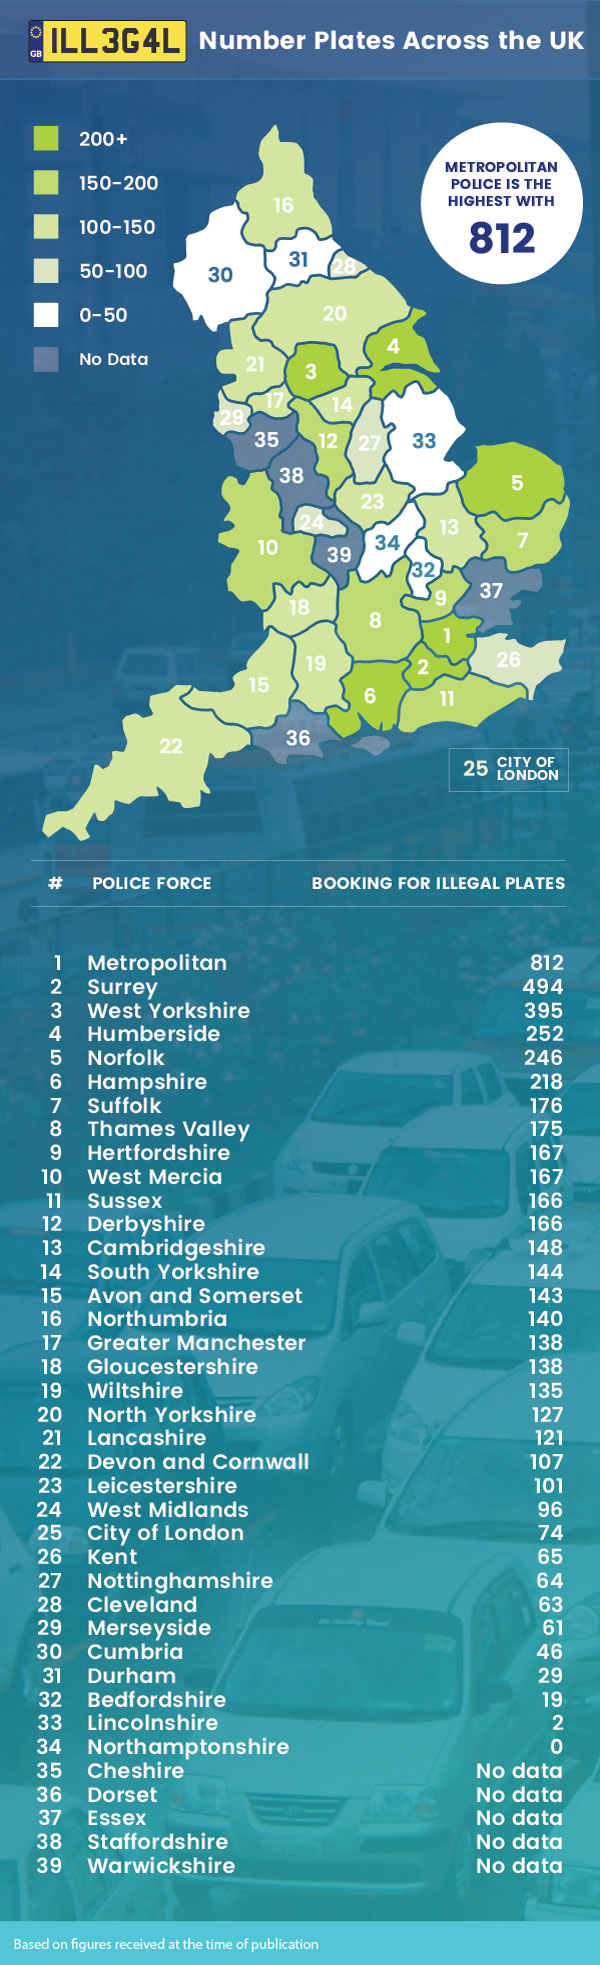 illegal-number-plates-uk-map